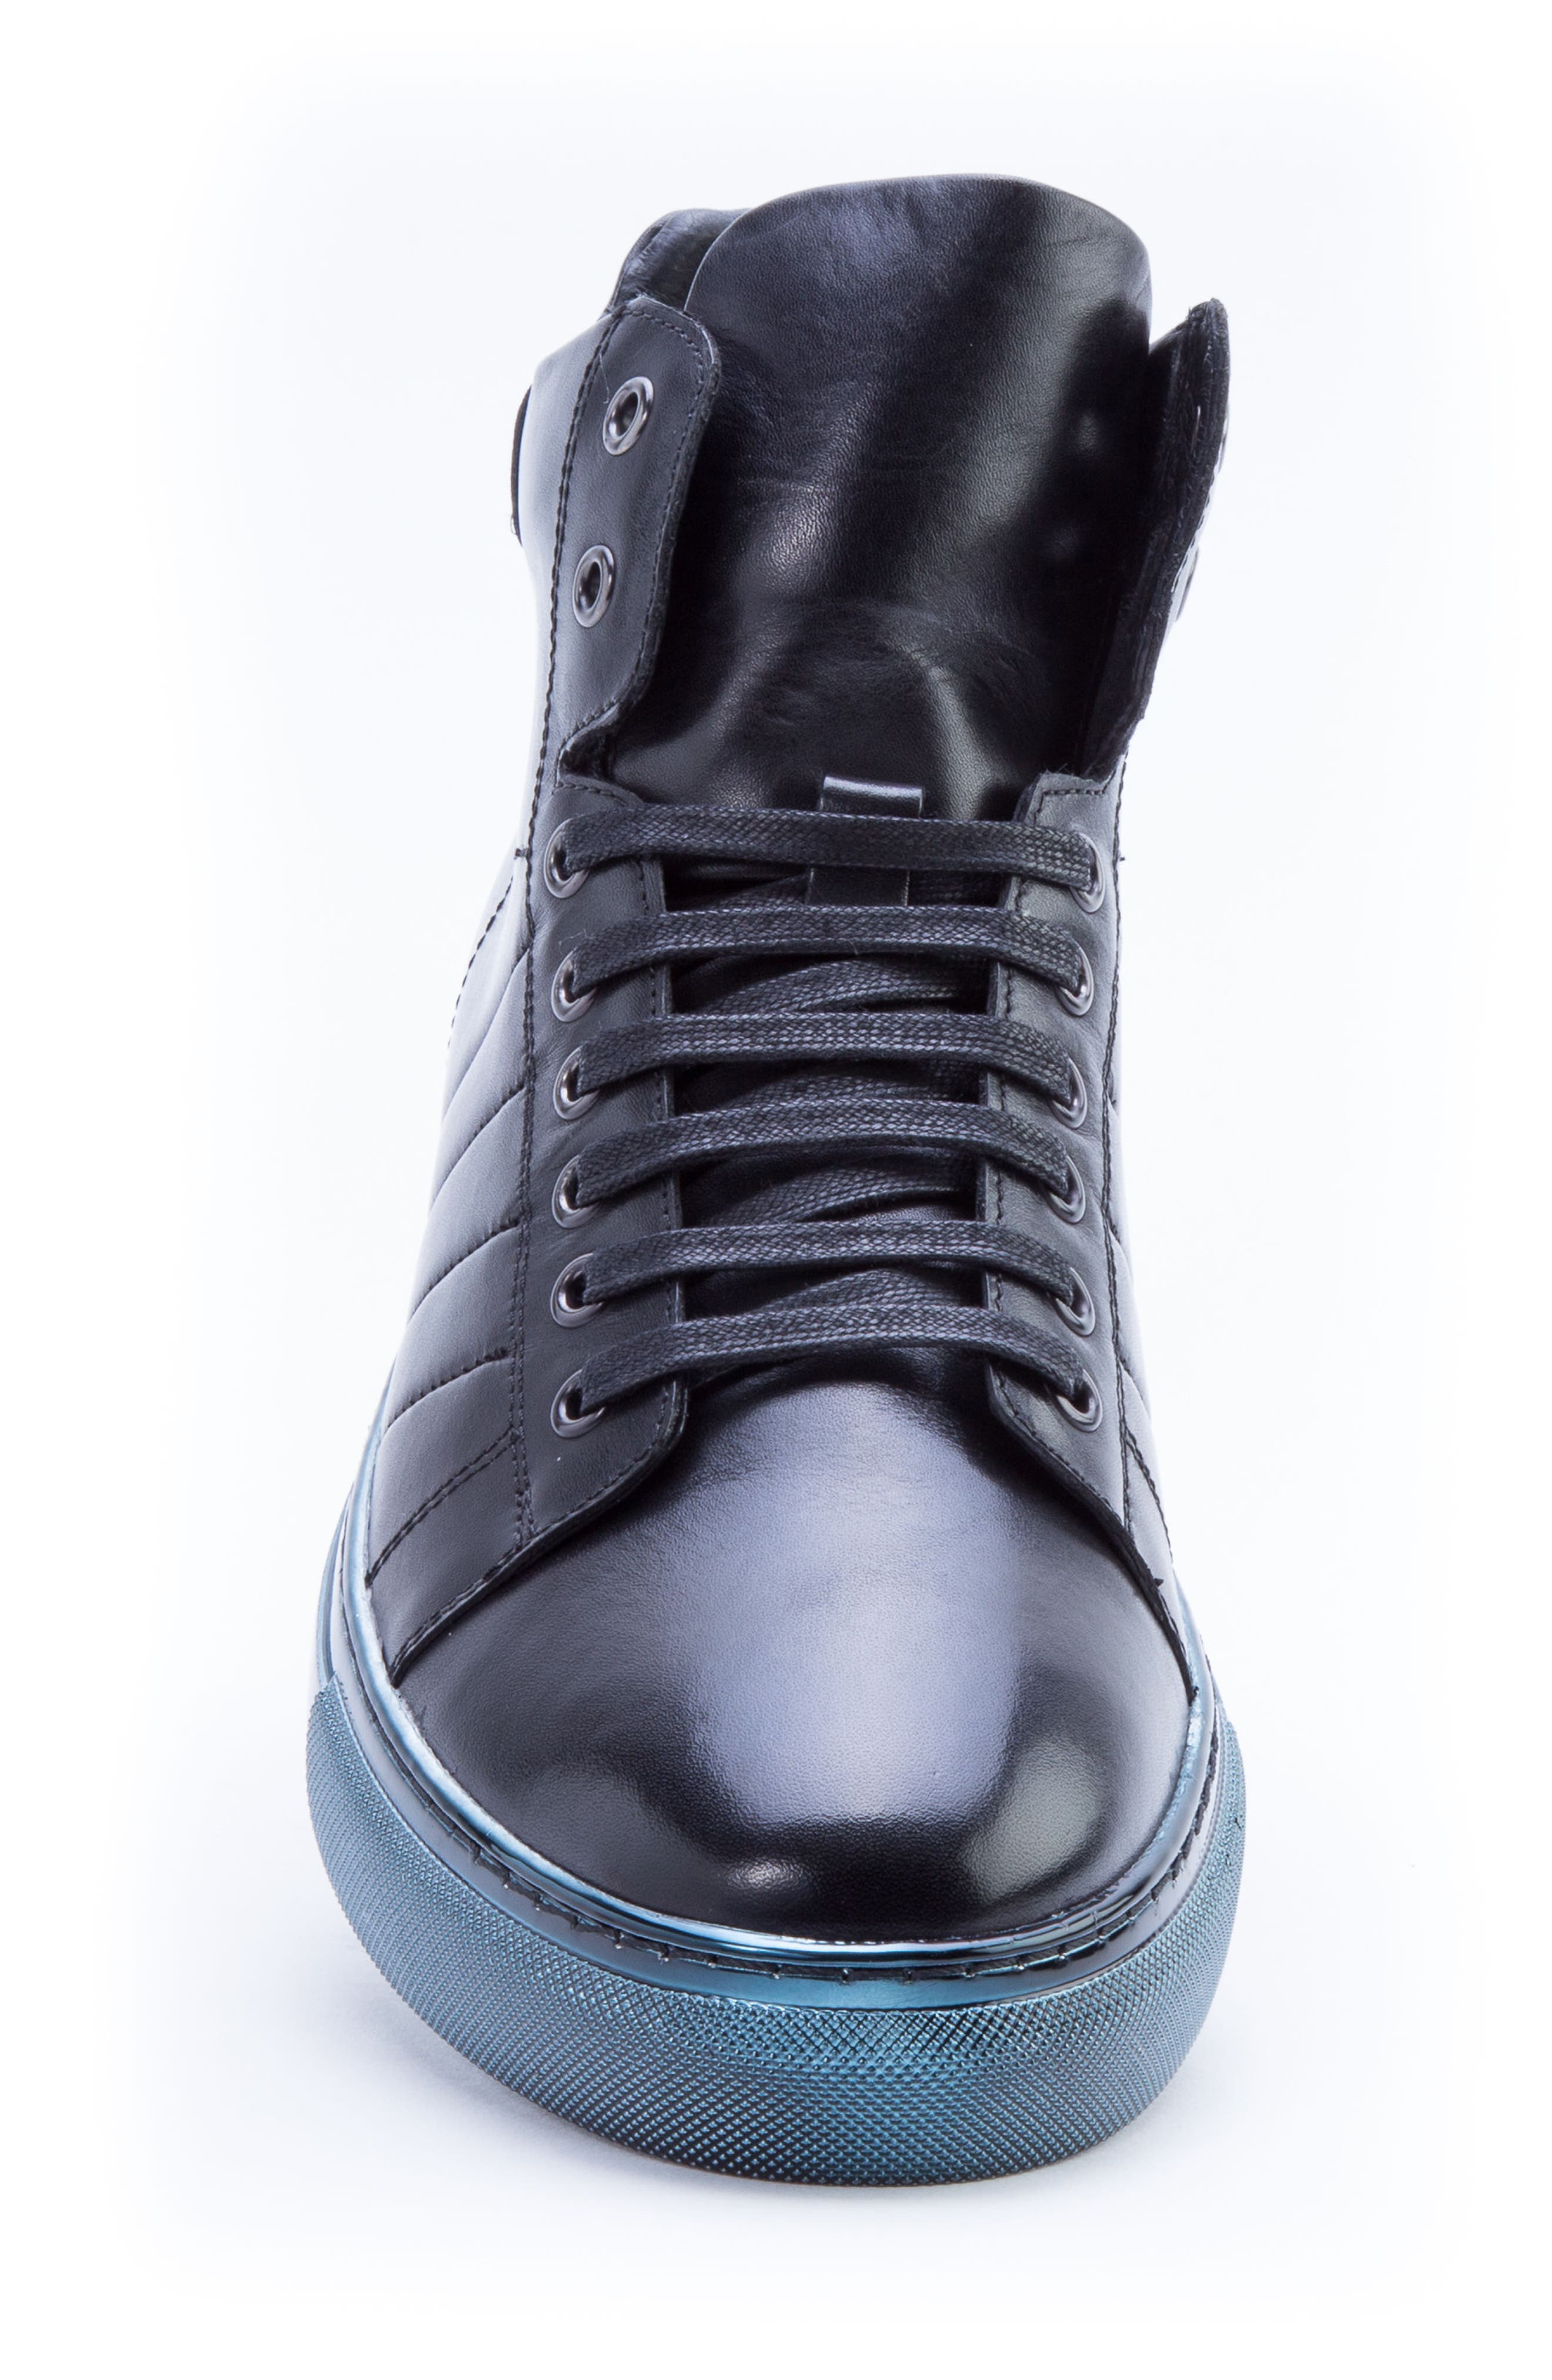 Hunter High Top Sneaker,                             Alternate thumbnail 5, color,                             NAVY LEATHER